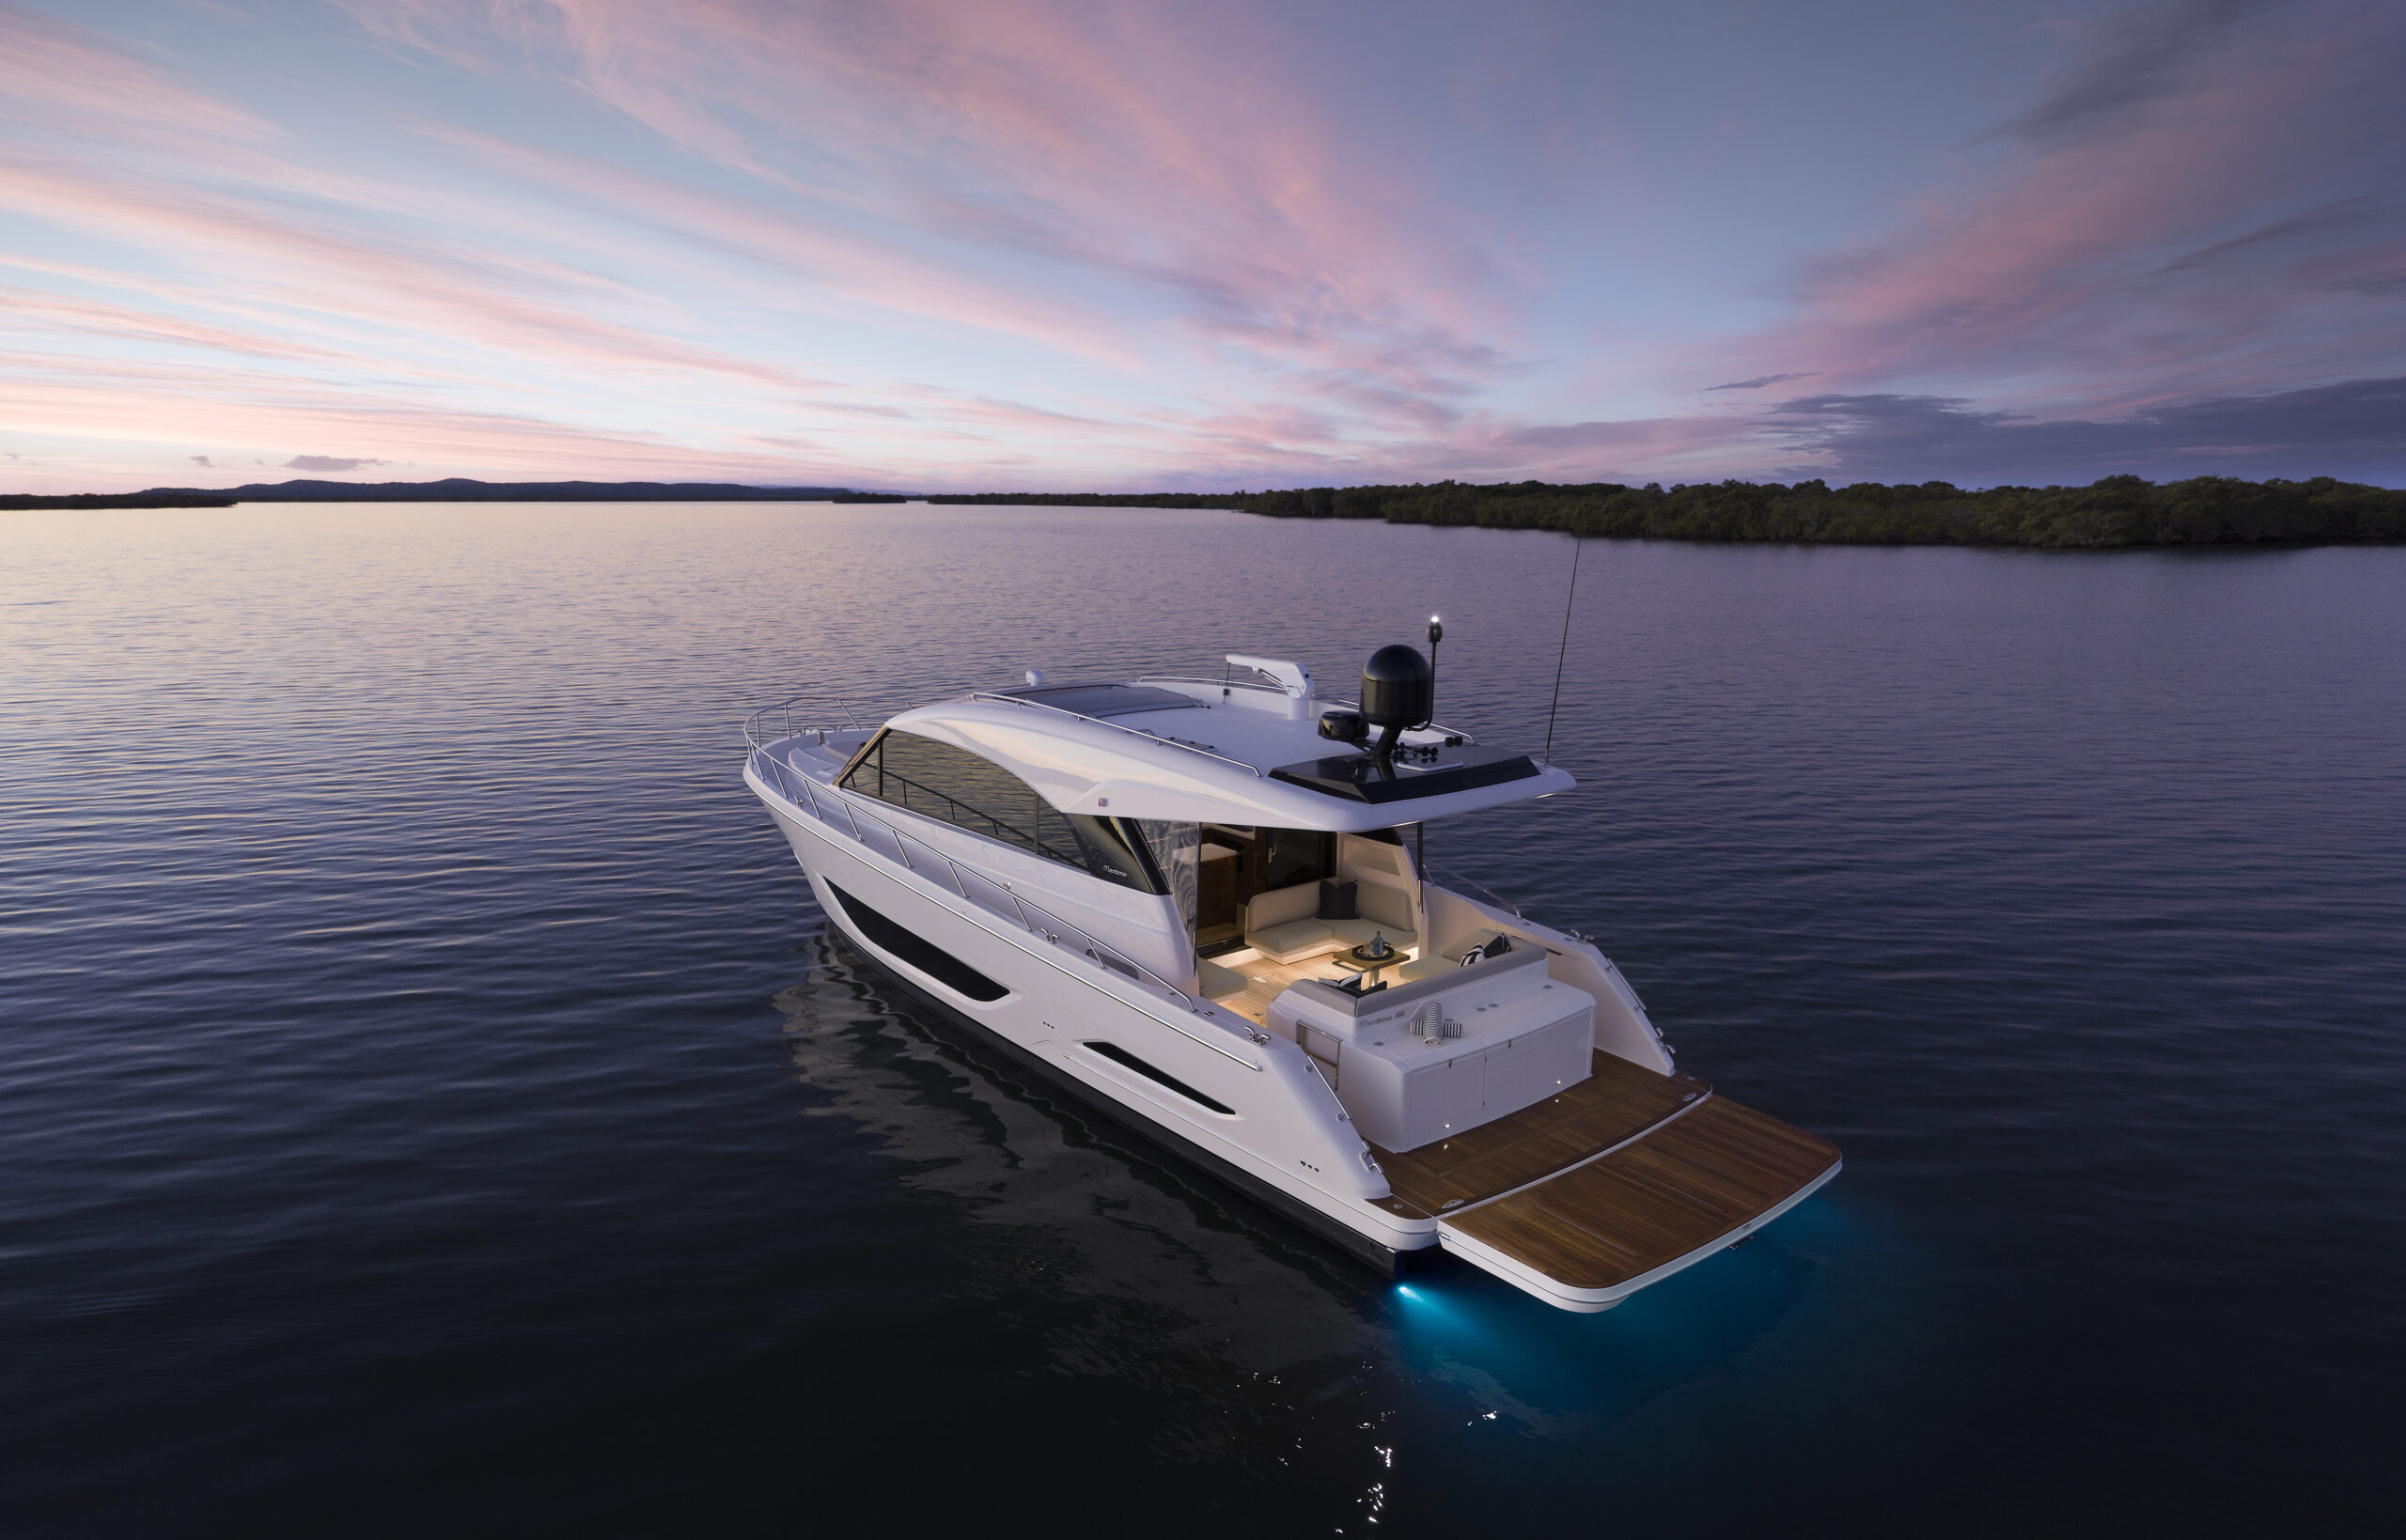 Maritimo S55 anchored from rear with sun setting